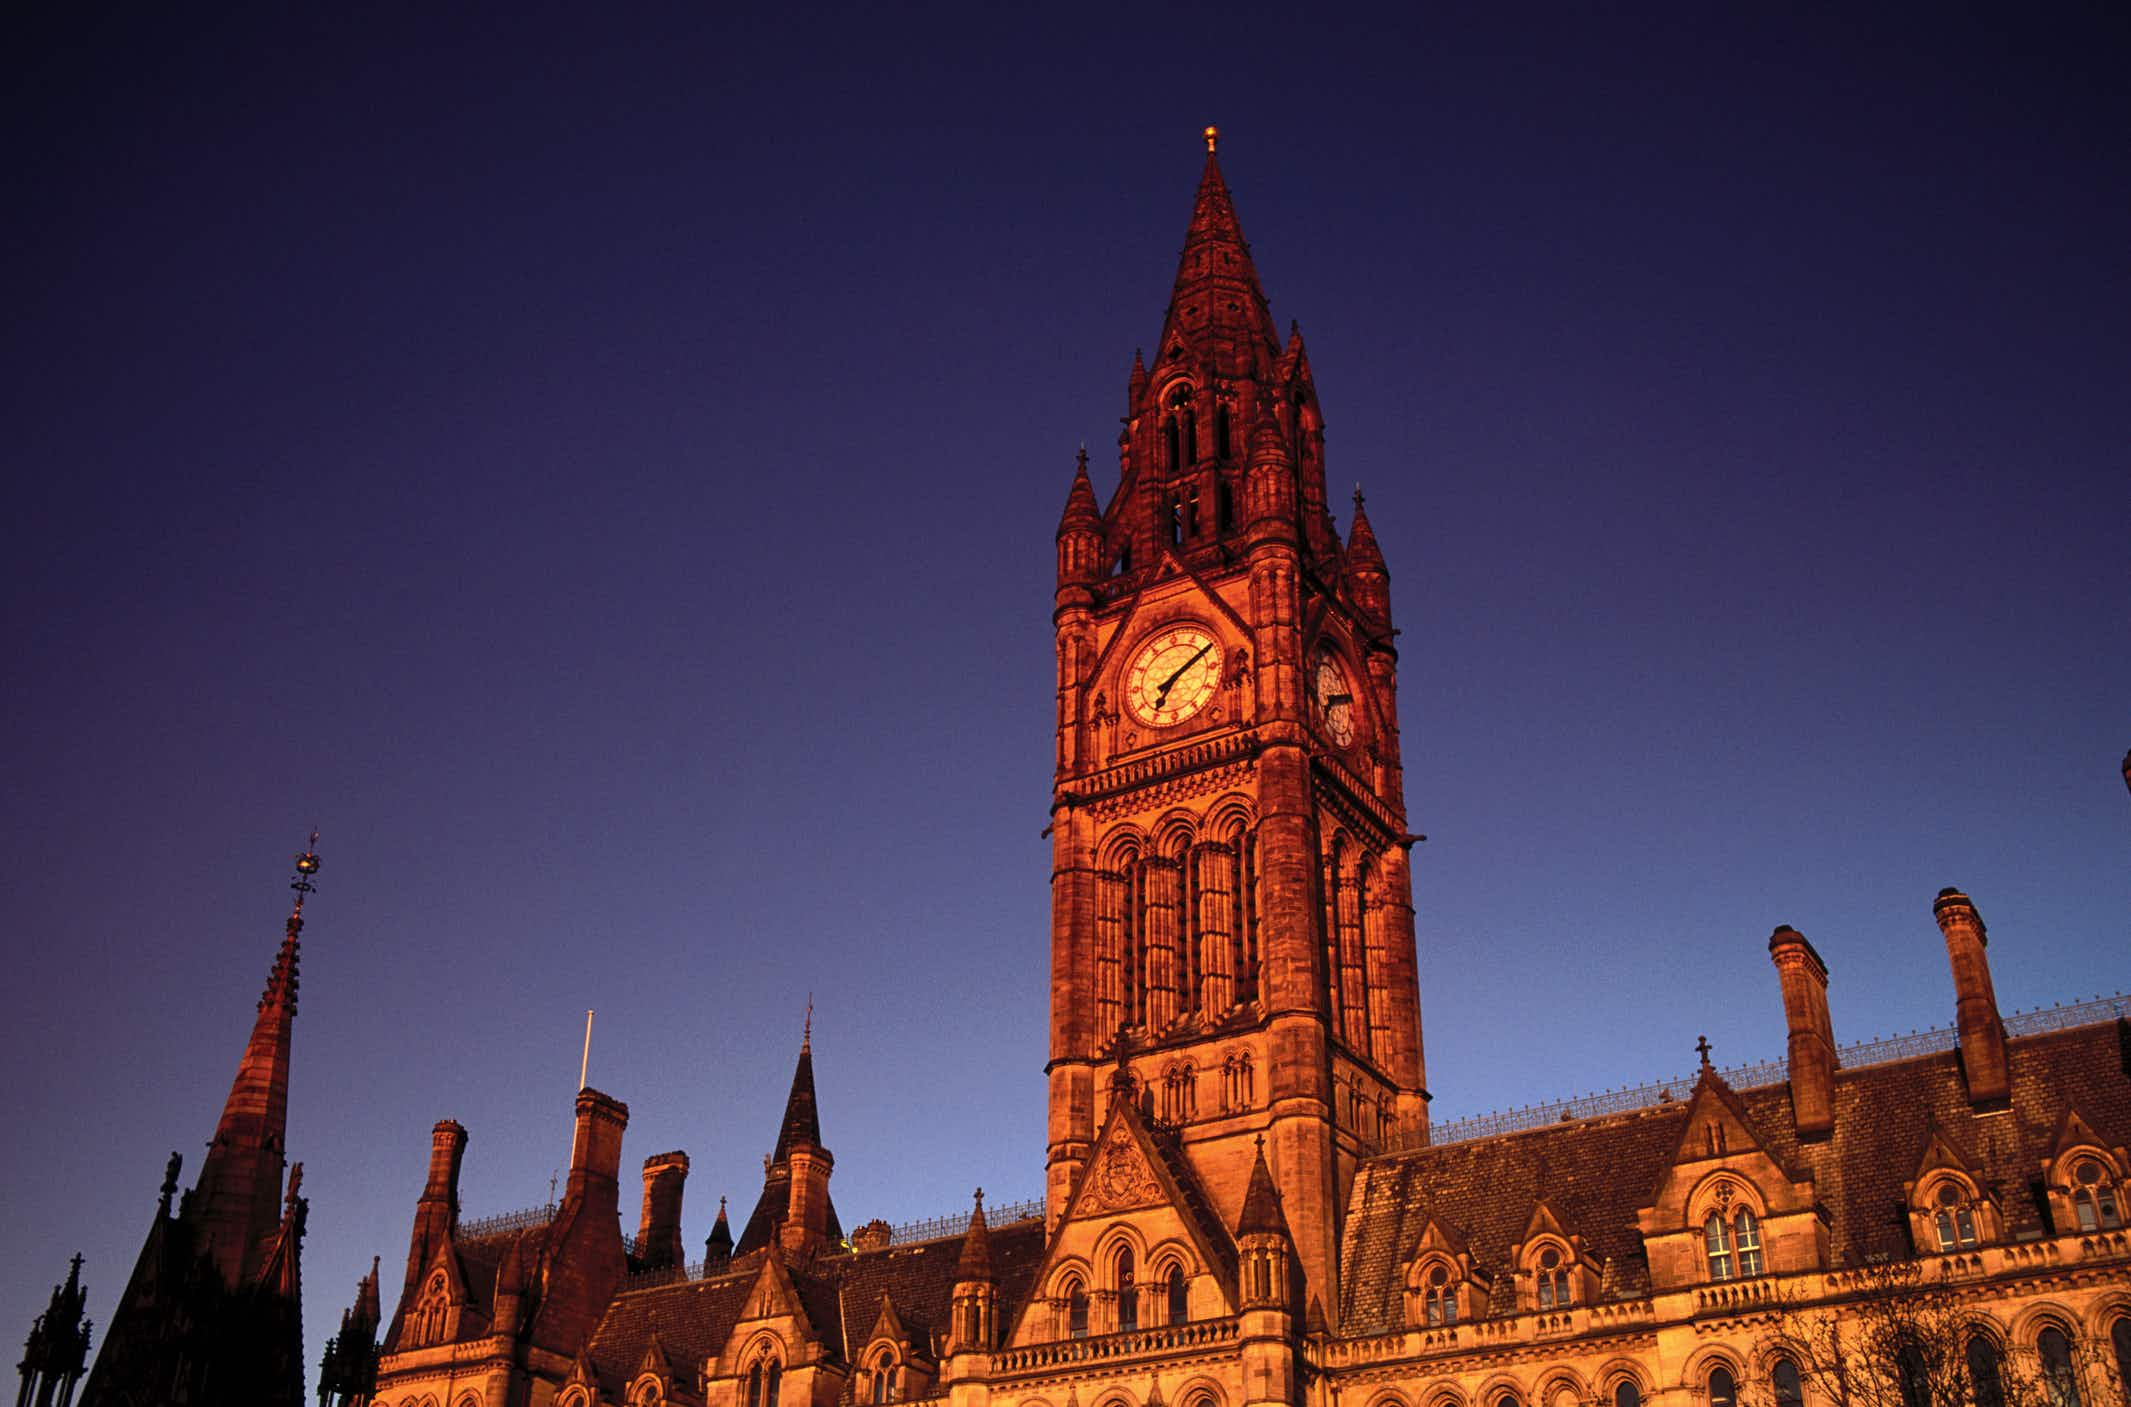 If you want to visit Manchester Town Hall before 2024, you need to hurry